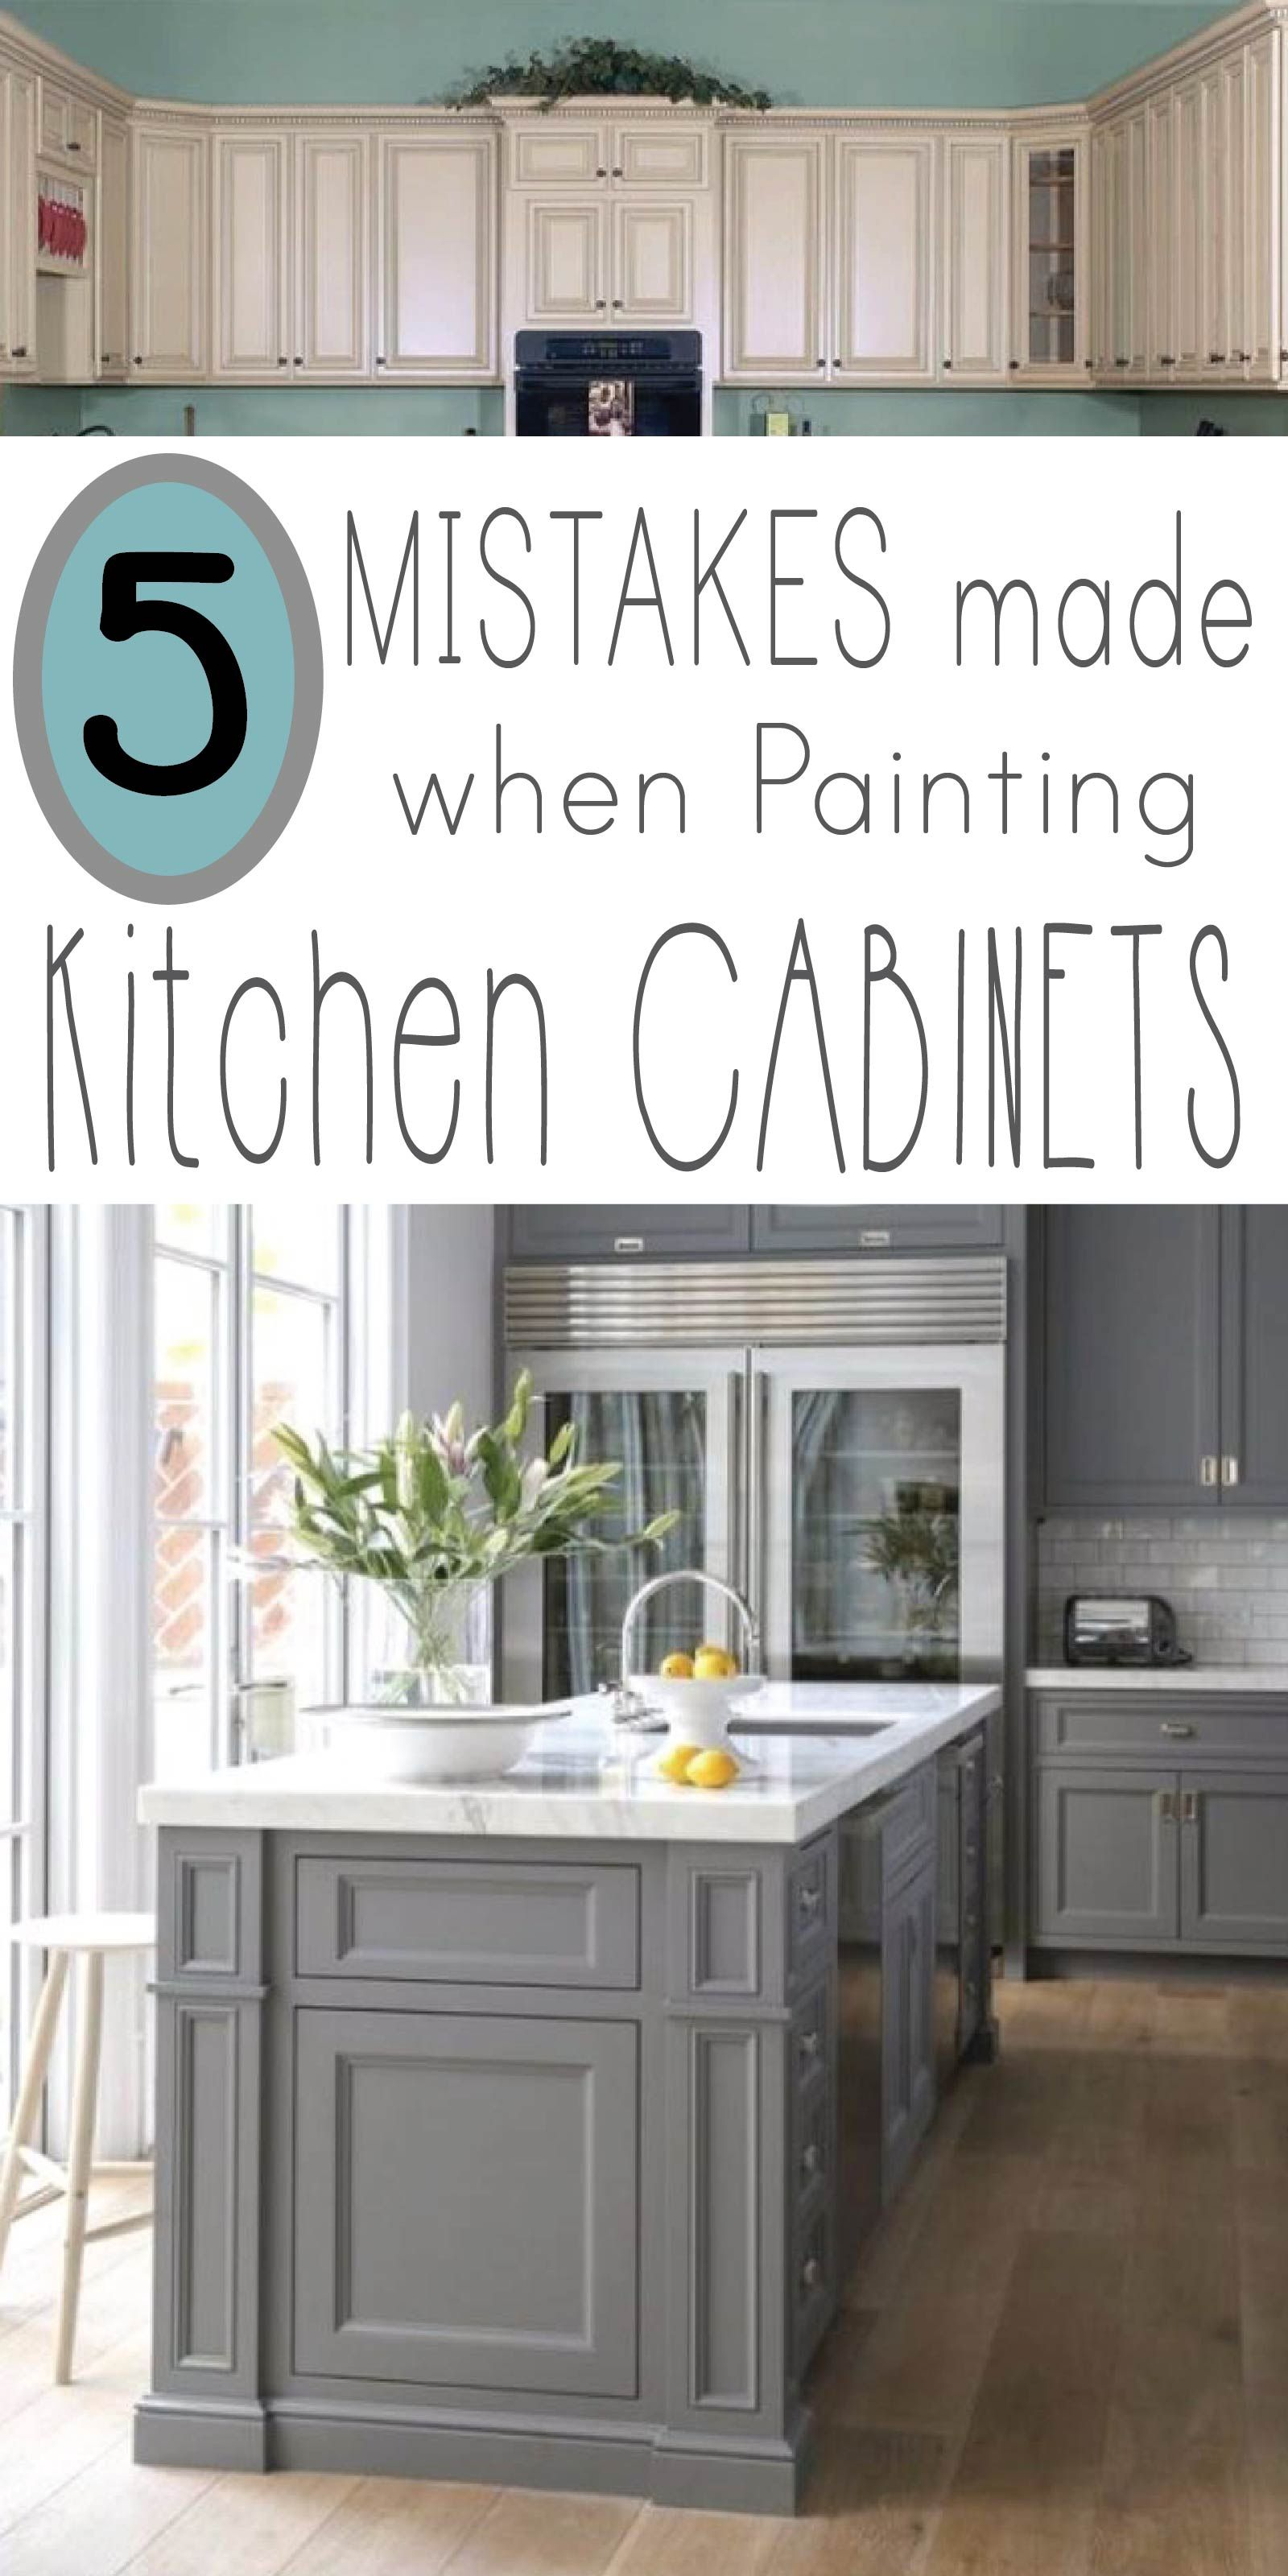 5 Mistakes People Make When Painting Kitchen Cabinets - Painted Furniture Ideas | Painting kitchen cabinets, Kitchen redo, Kitchen cabinets